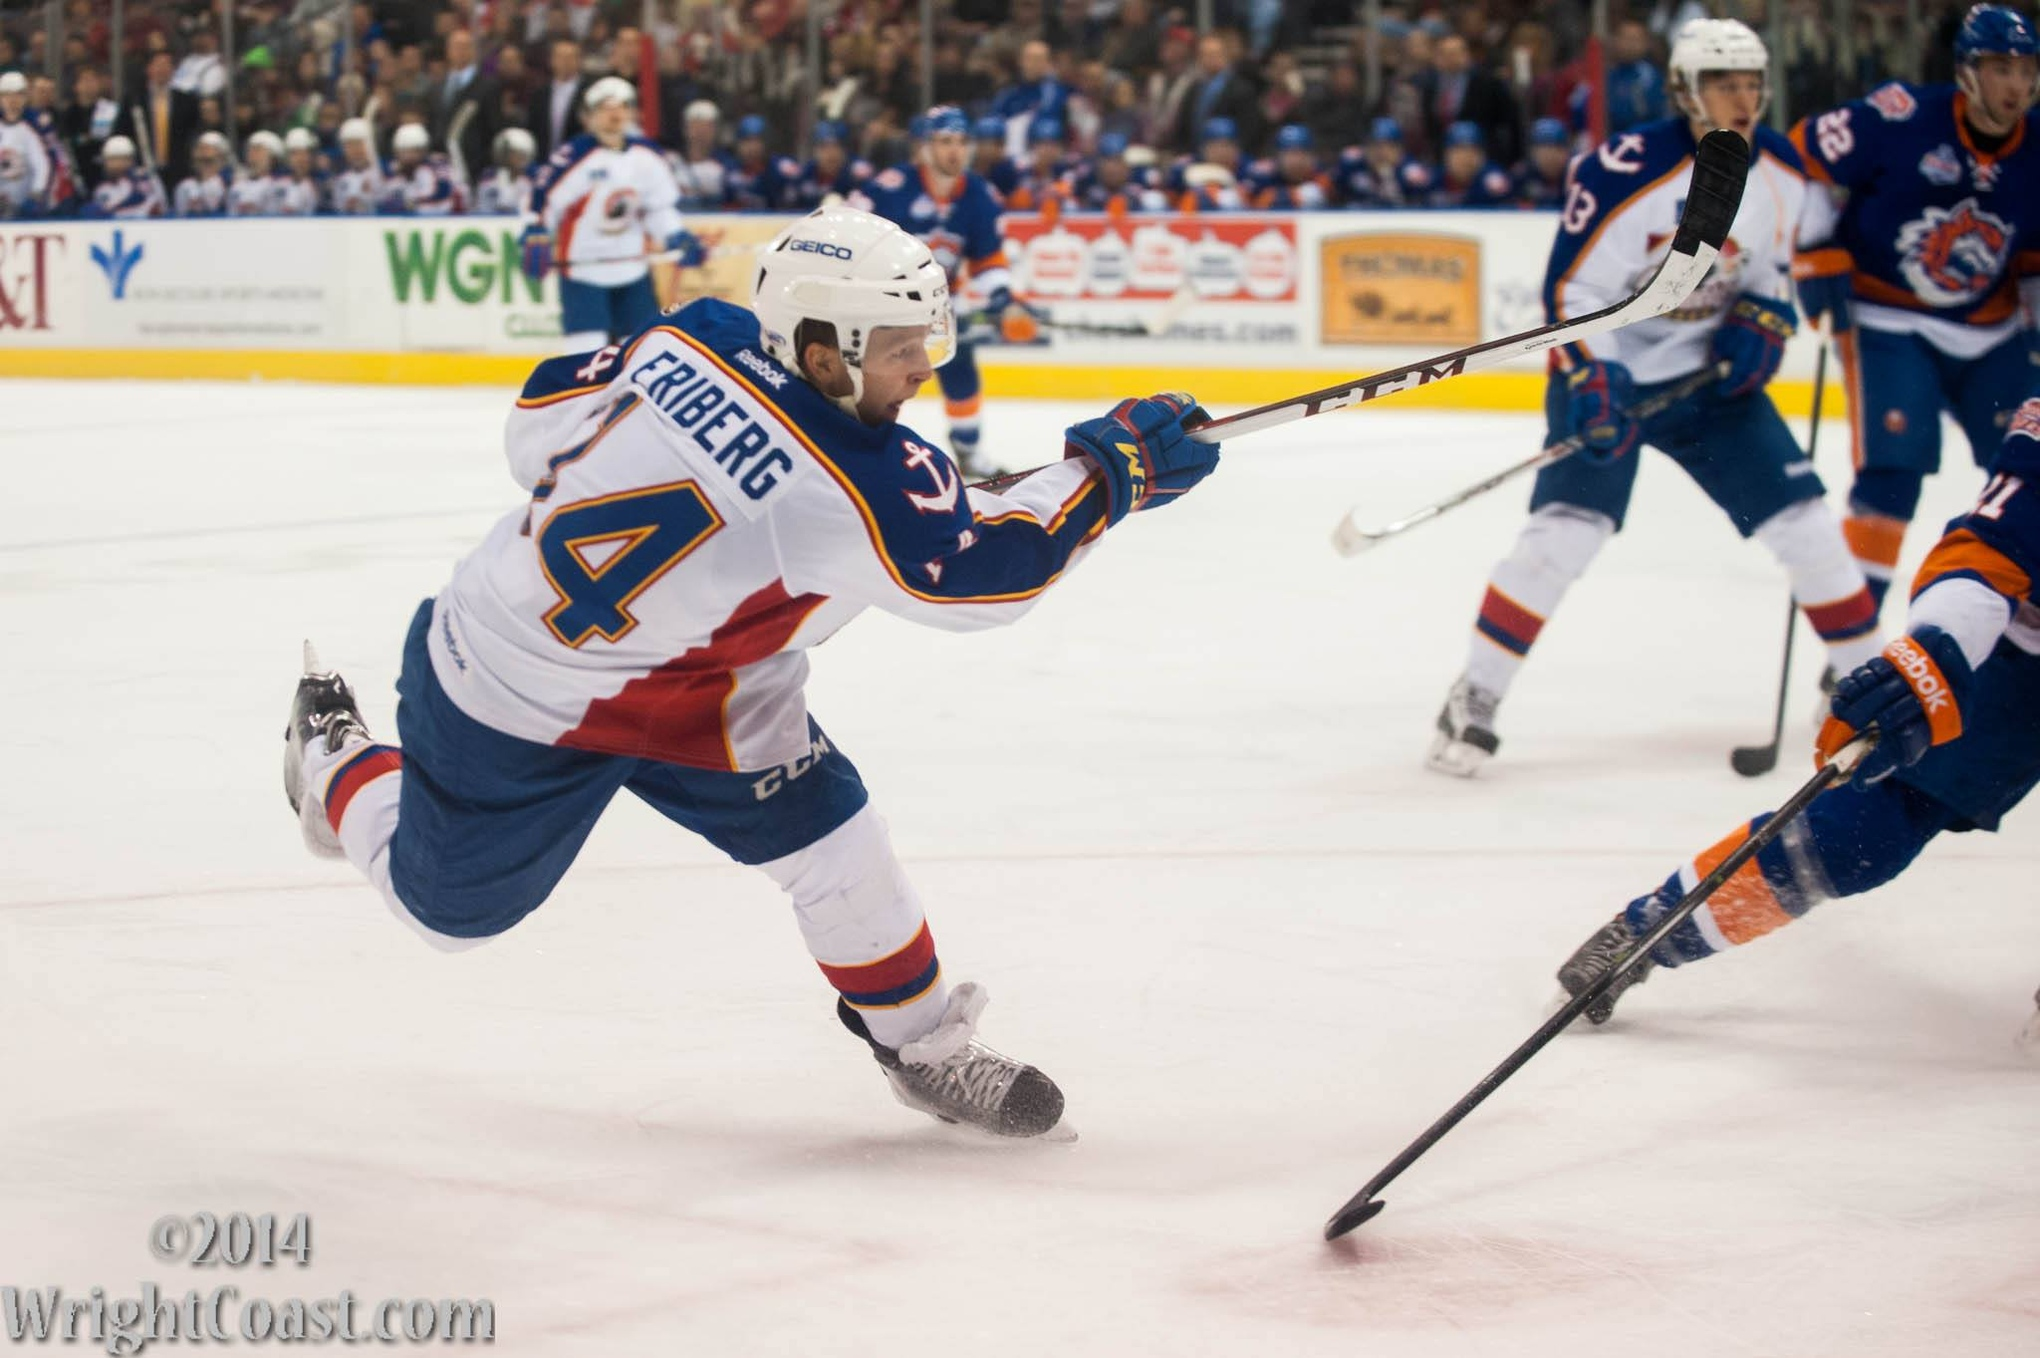 Max Friberg Takes a shot on goal at Scope 2013-2014 Norfolk Admirals